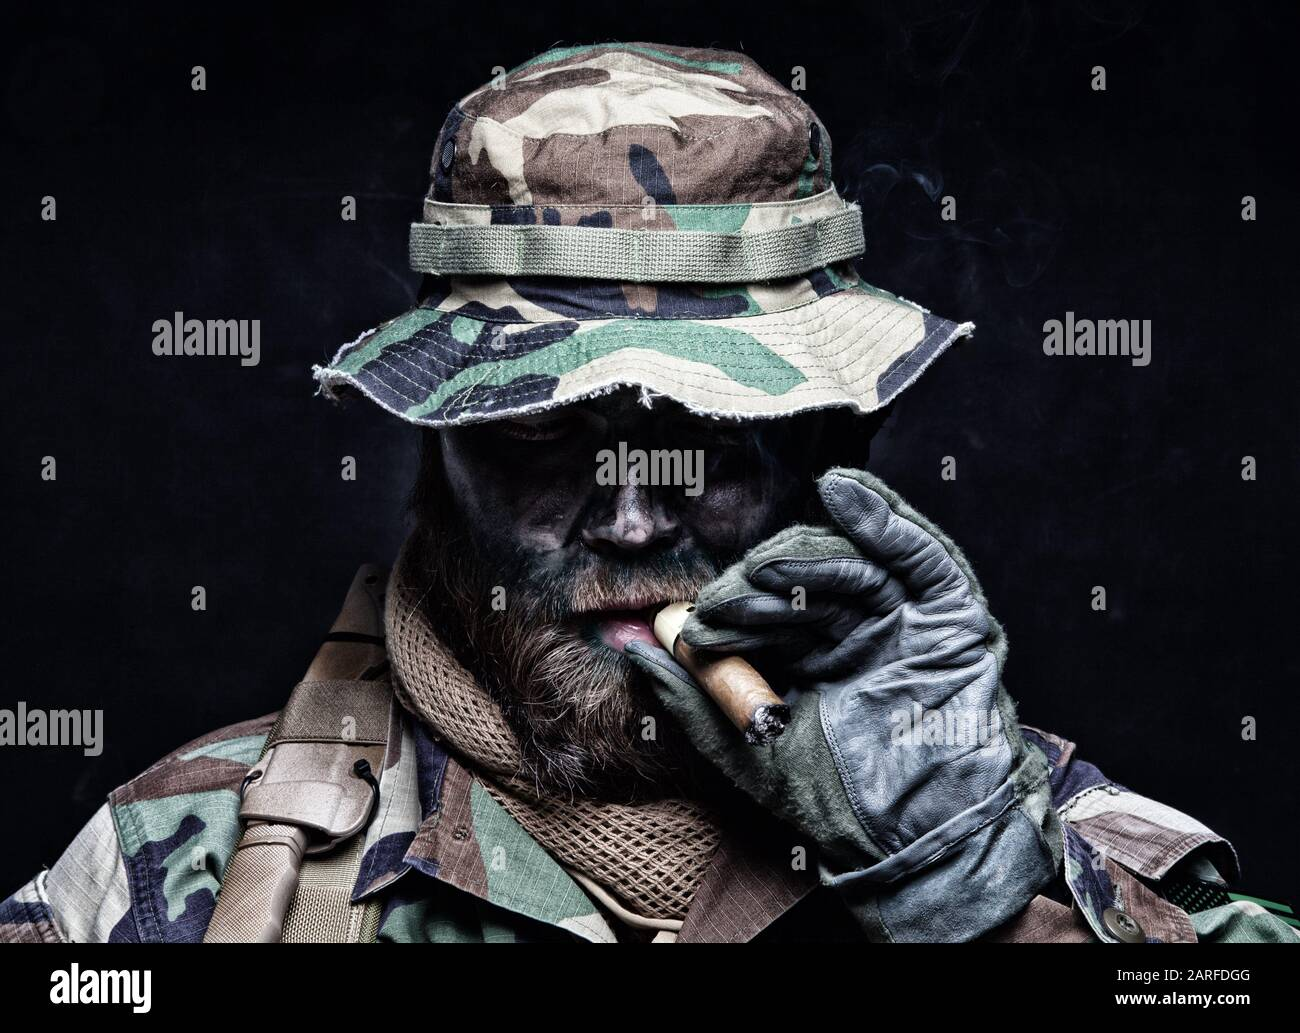 Brutal and serious commando soldier, army special forces veteran, in camouflage battle uniform, boonie hat, black paint on bearded face, combat knife Stock Photo